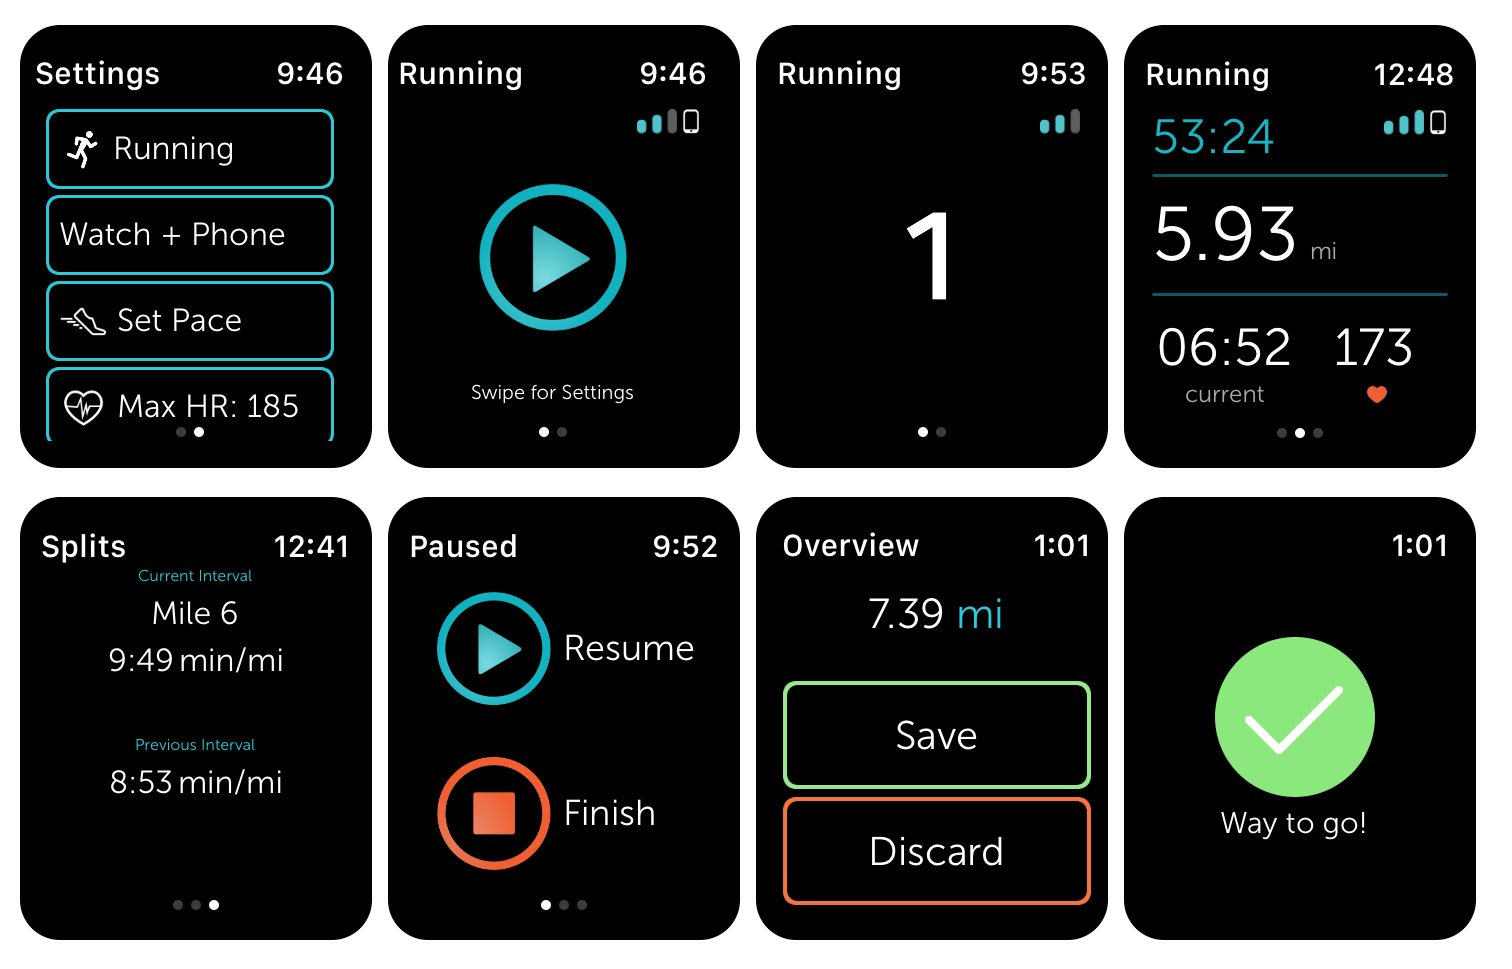 Runkeeper watch app